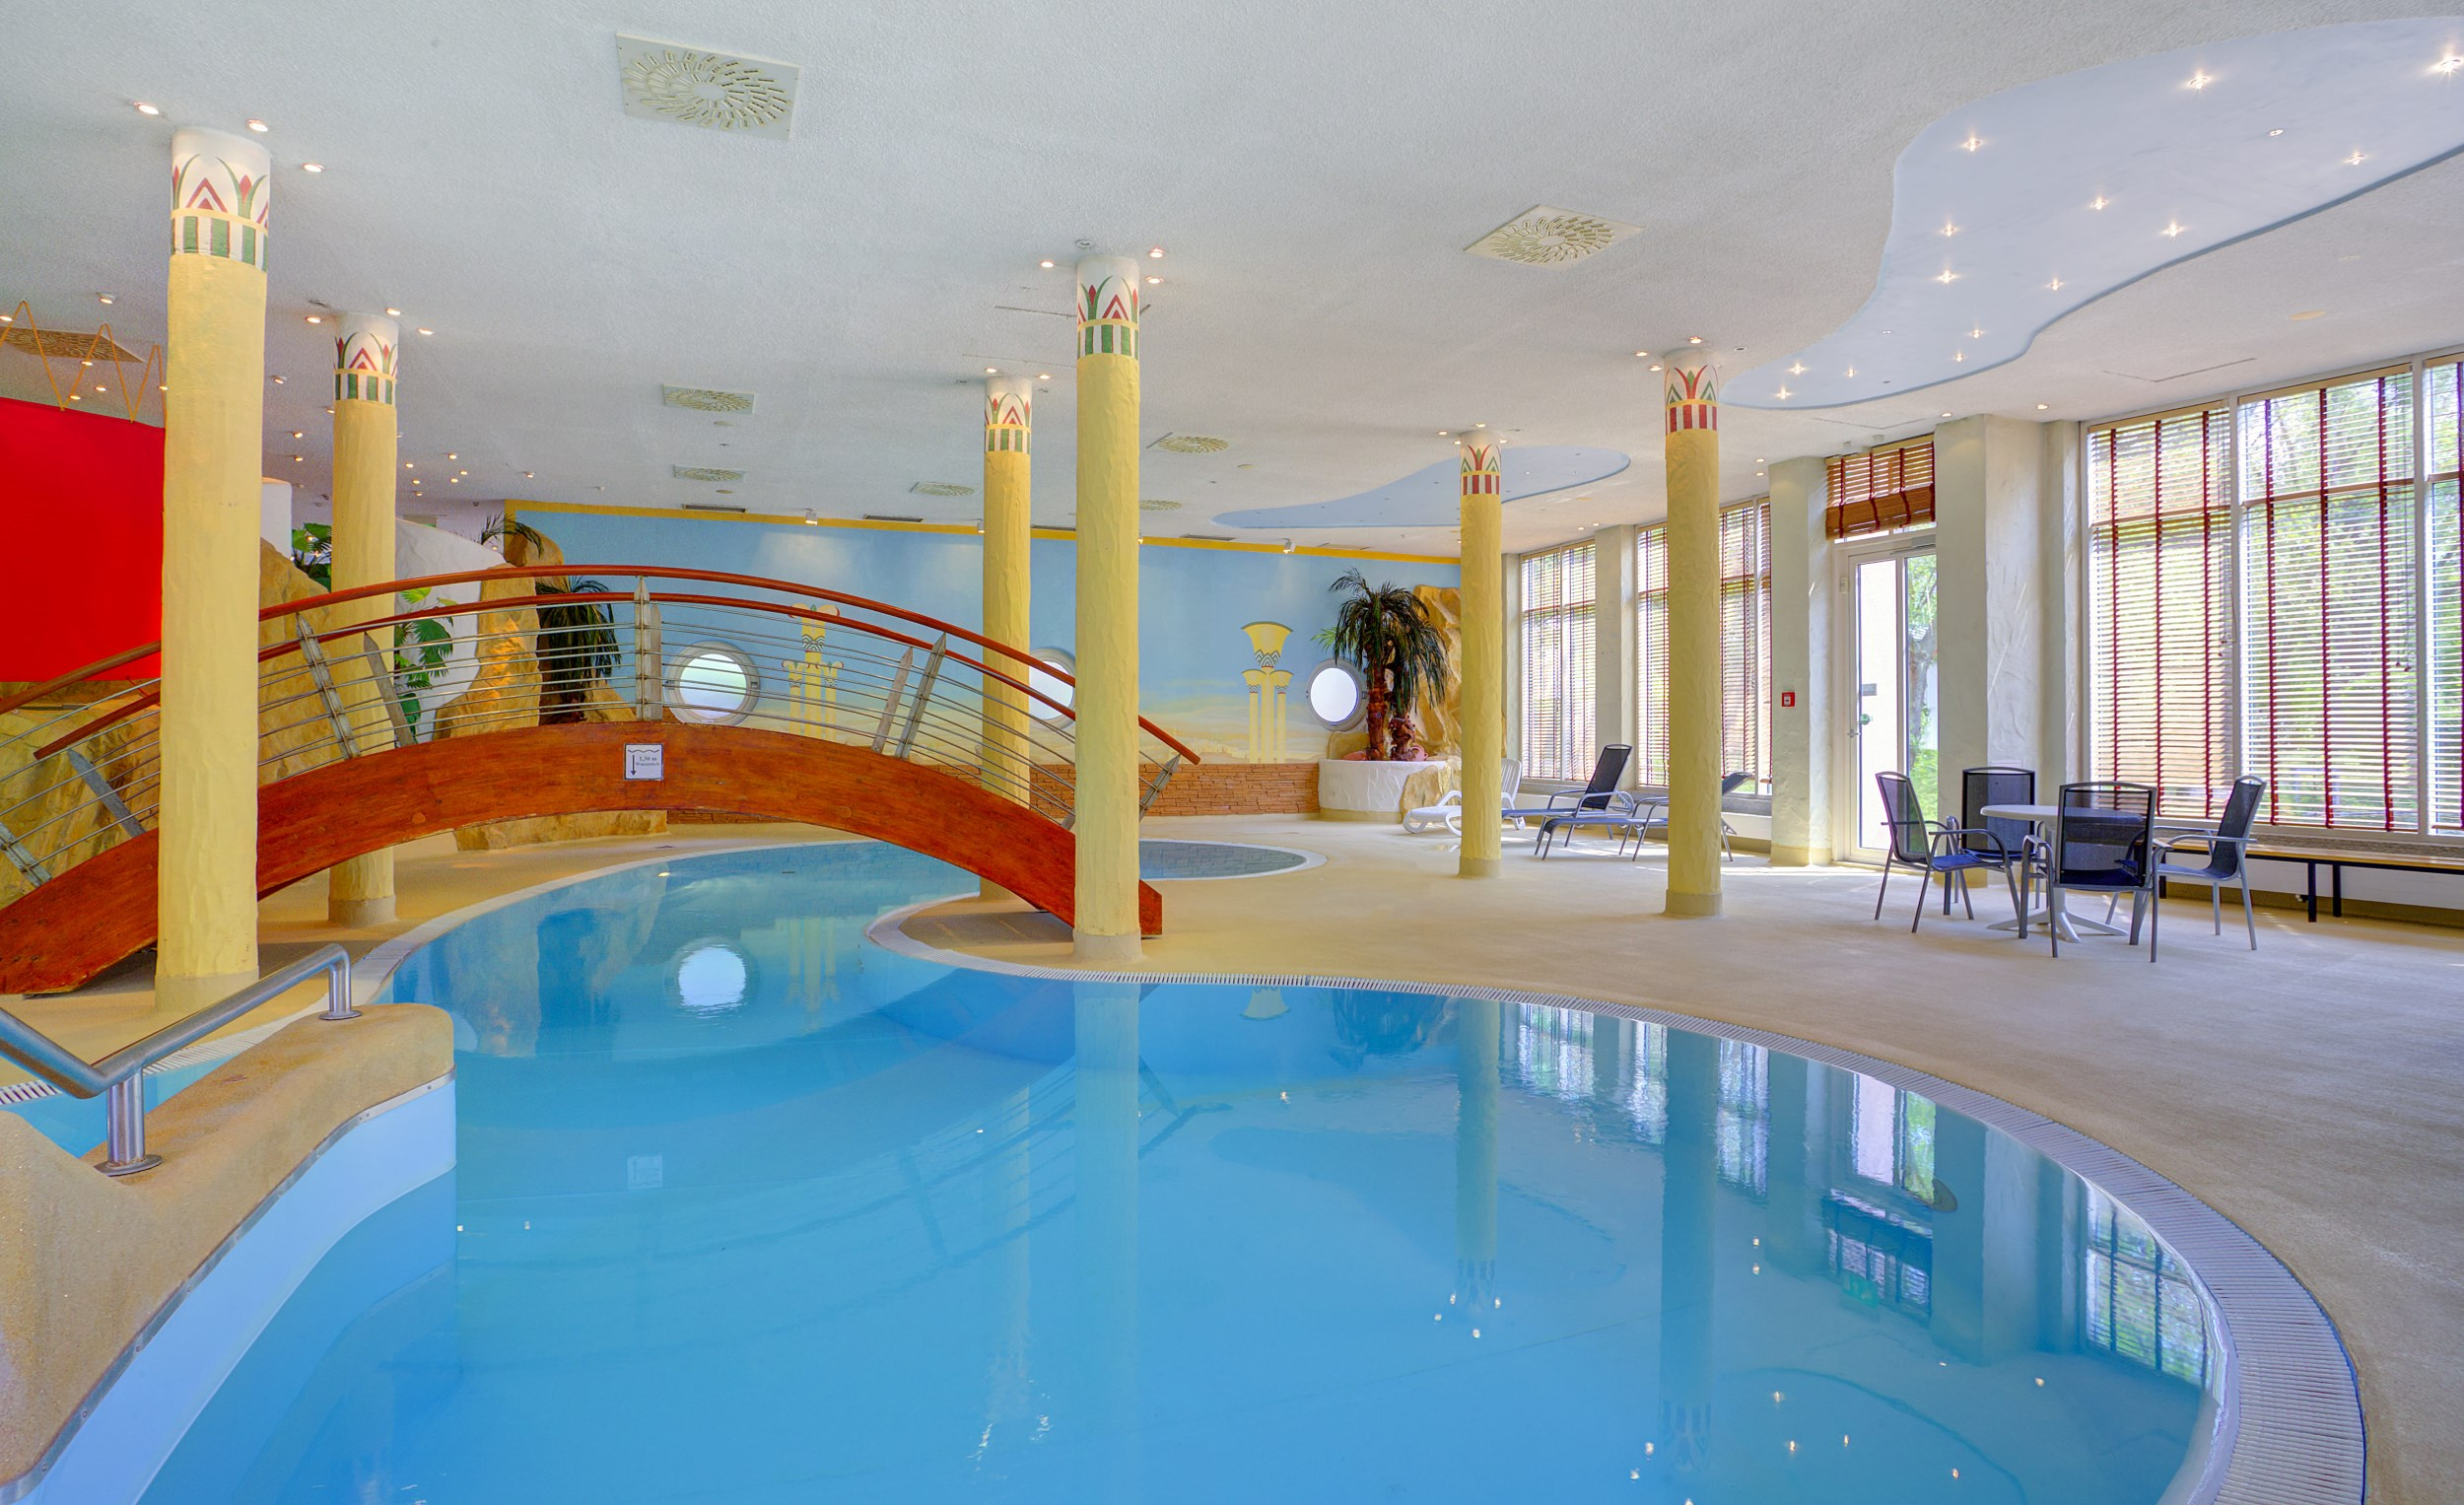 Michel Hotel Magdeburg Pool